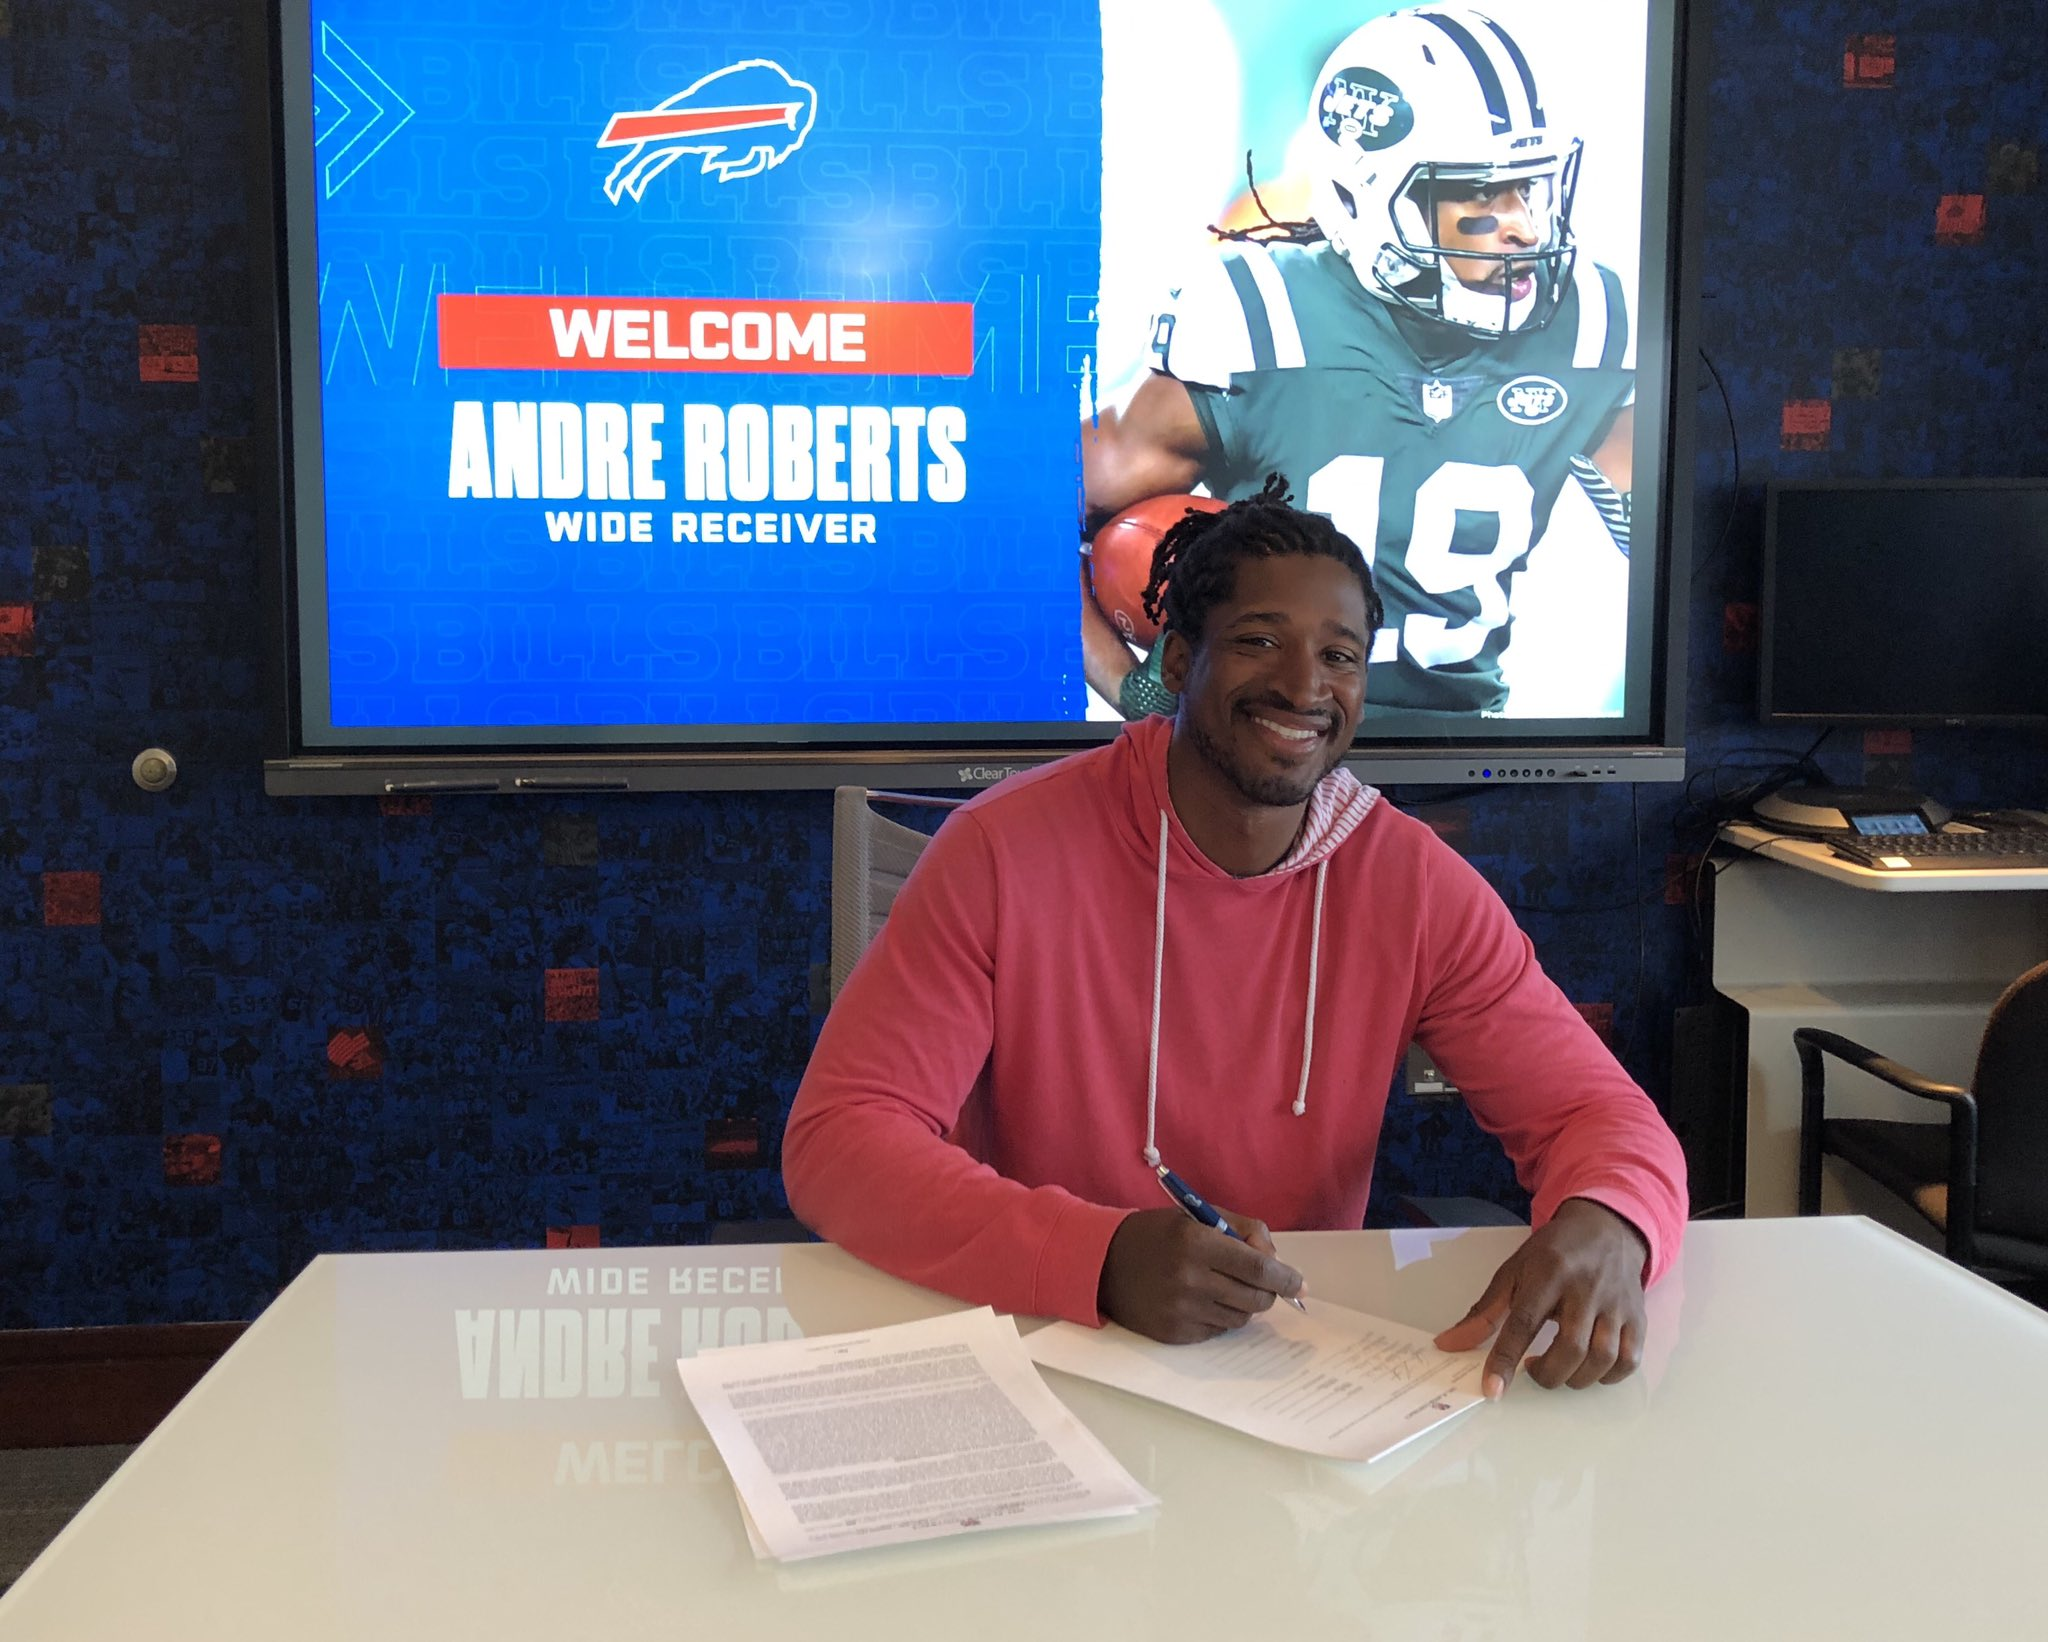 We've signed WR/KR Andre Roberts to a two-year deal. #GoBills   Details: https://t.co/7QbfmaRgom https://t.co/9CXaZL6XRM